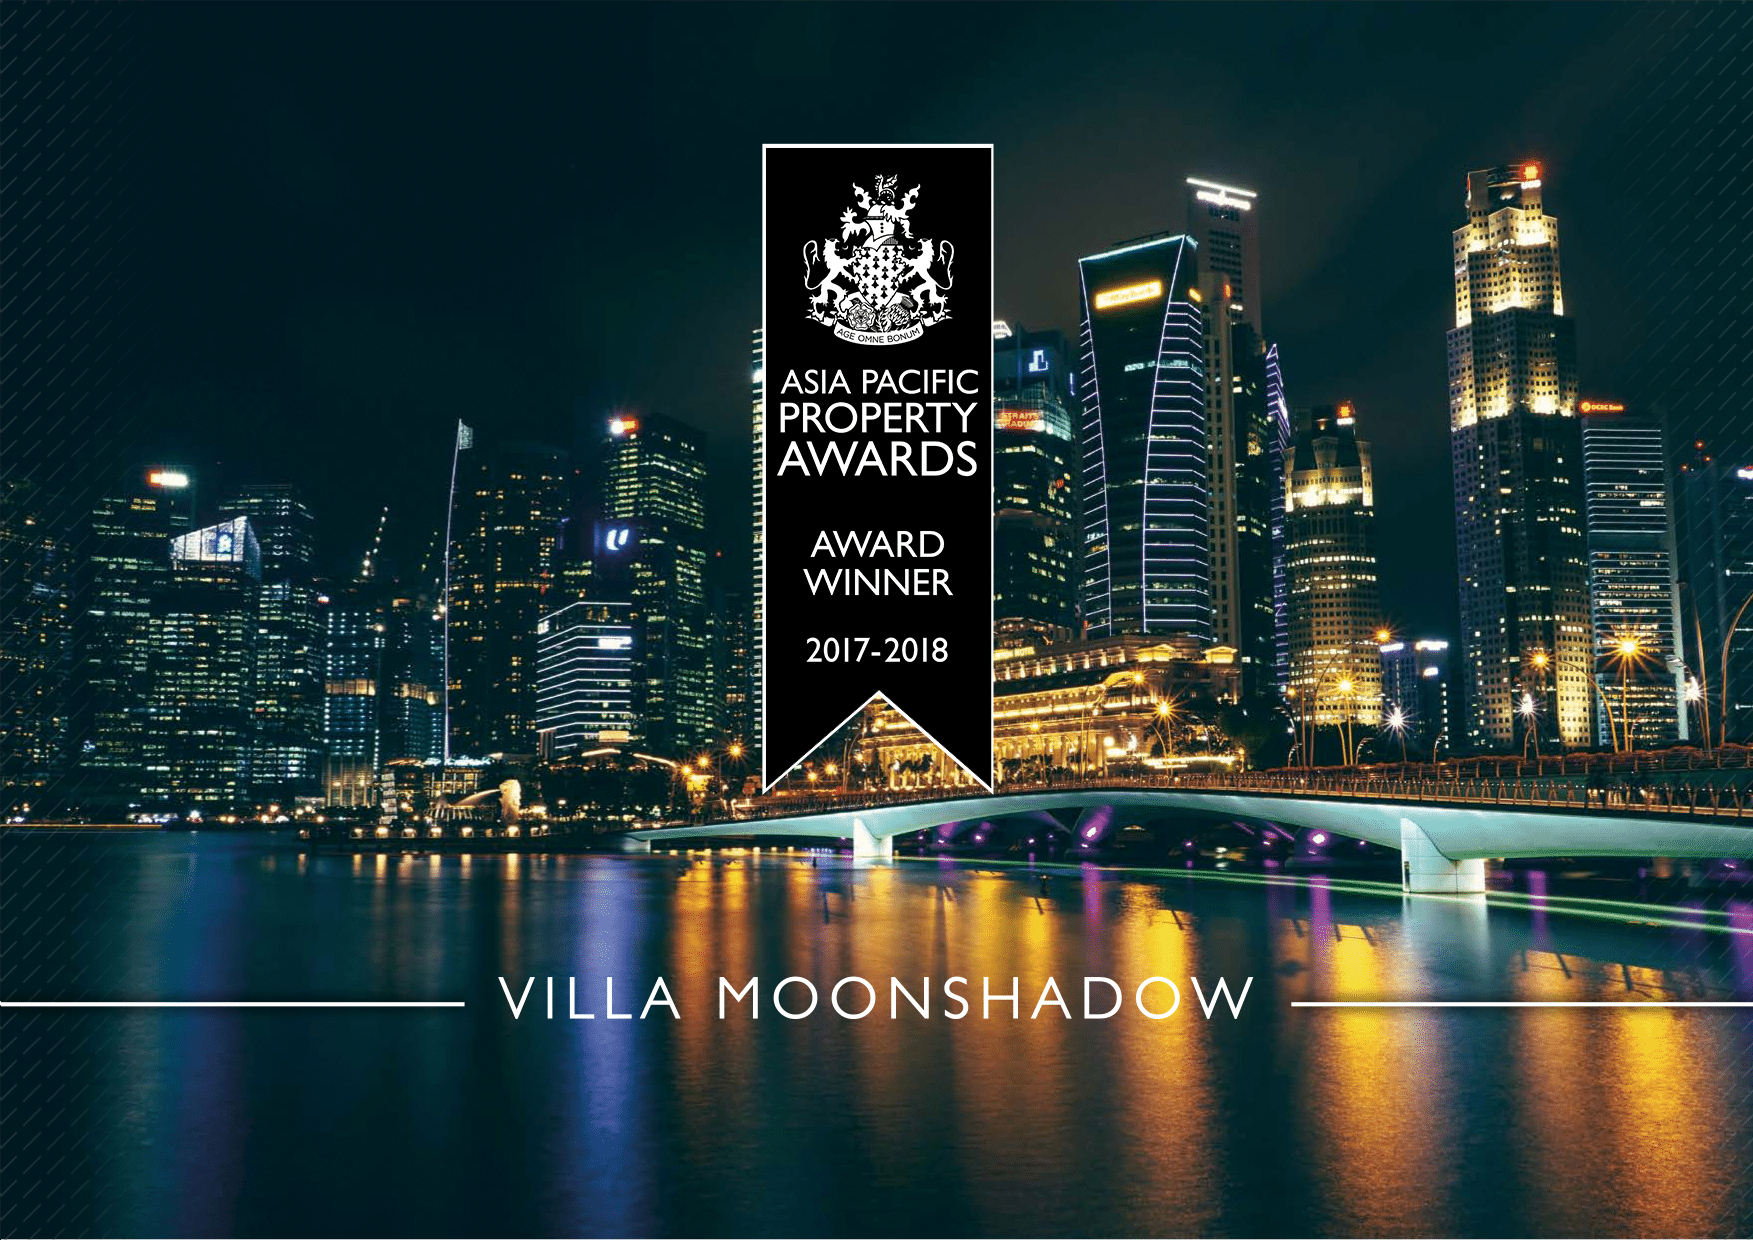 Villa Moonshadow